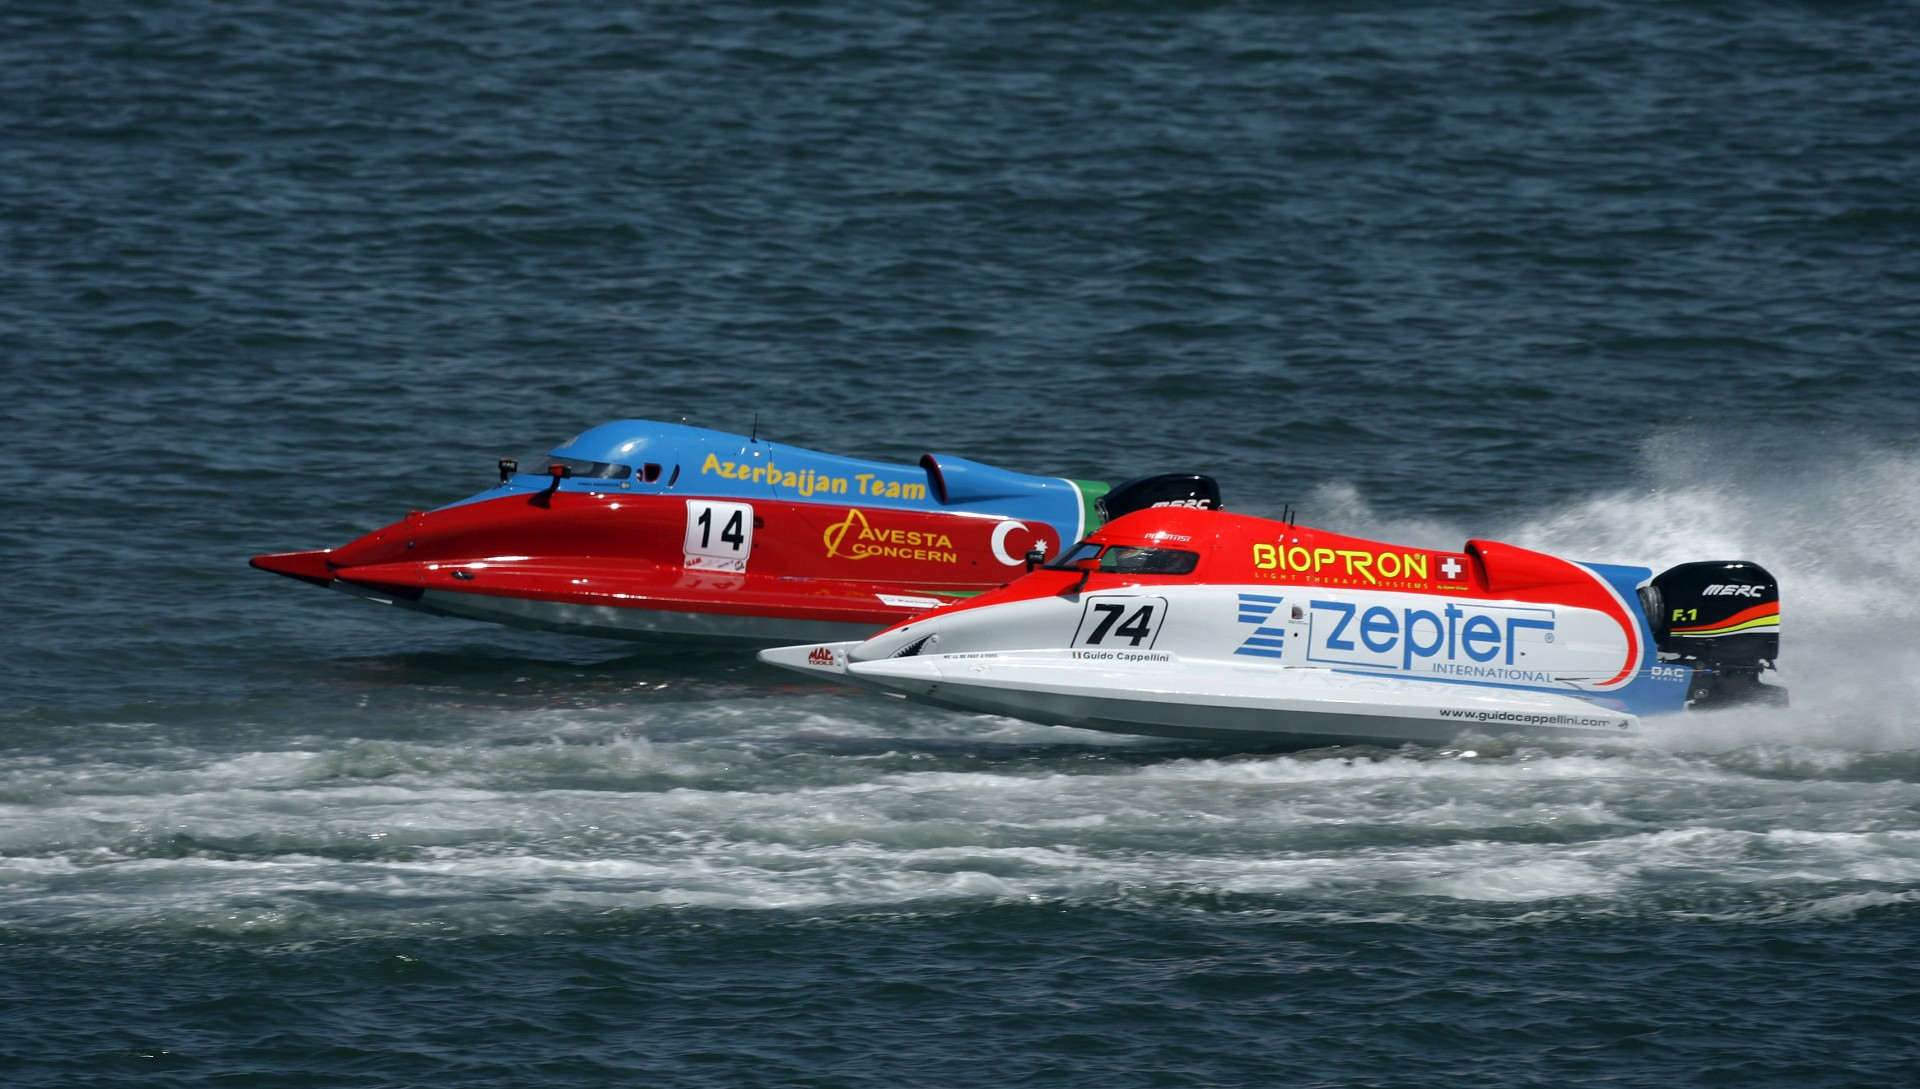 040409-PL-Guido Cappellini of Italy of the Zepter Team,(74), and Jonas Andersson of Sweden of the F1 Team Azerbaijan in action during the Grand Prix of Portugal, Portimao. The 1st race of the UIM F1 Powerboat Grand Prix season for 2009. Picture by Paul Lakatos/Idea Marketing.